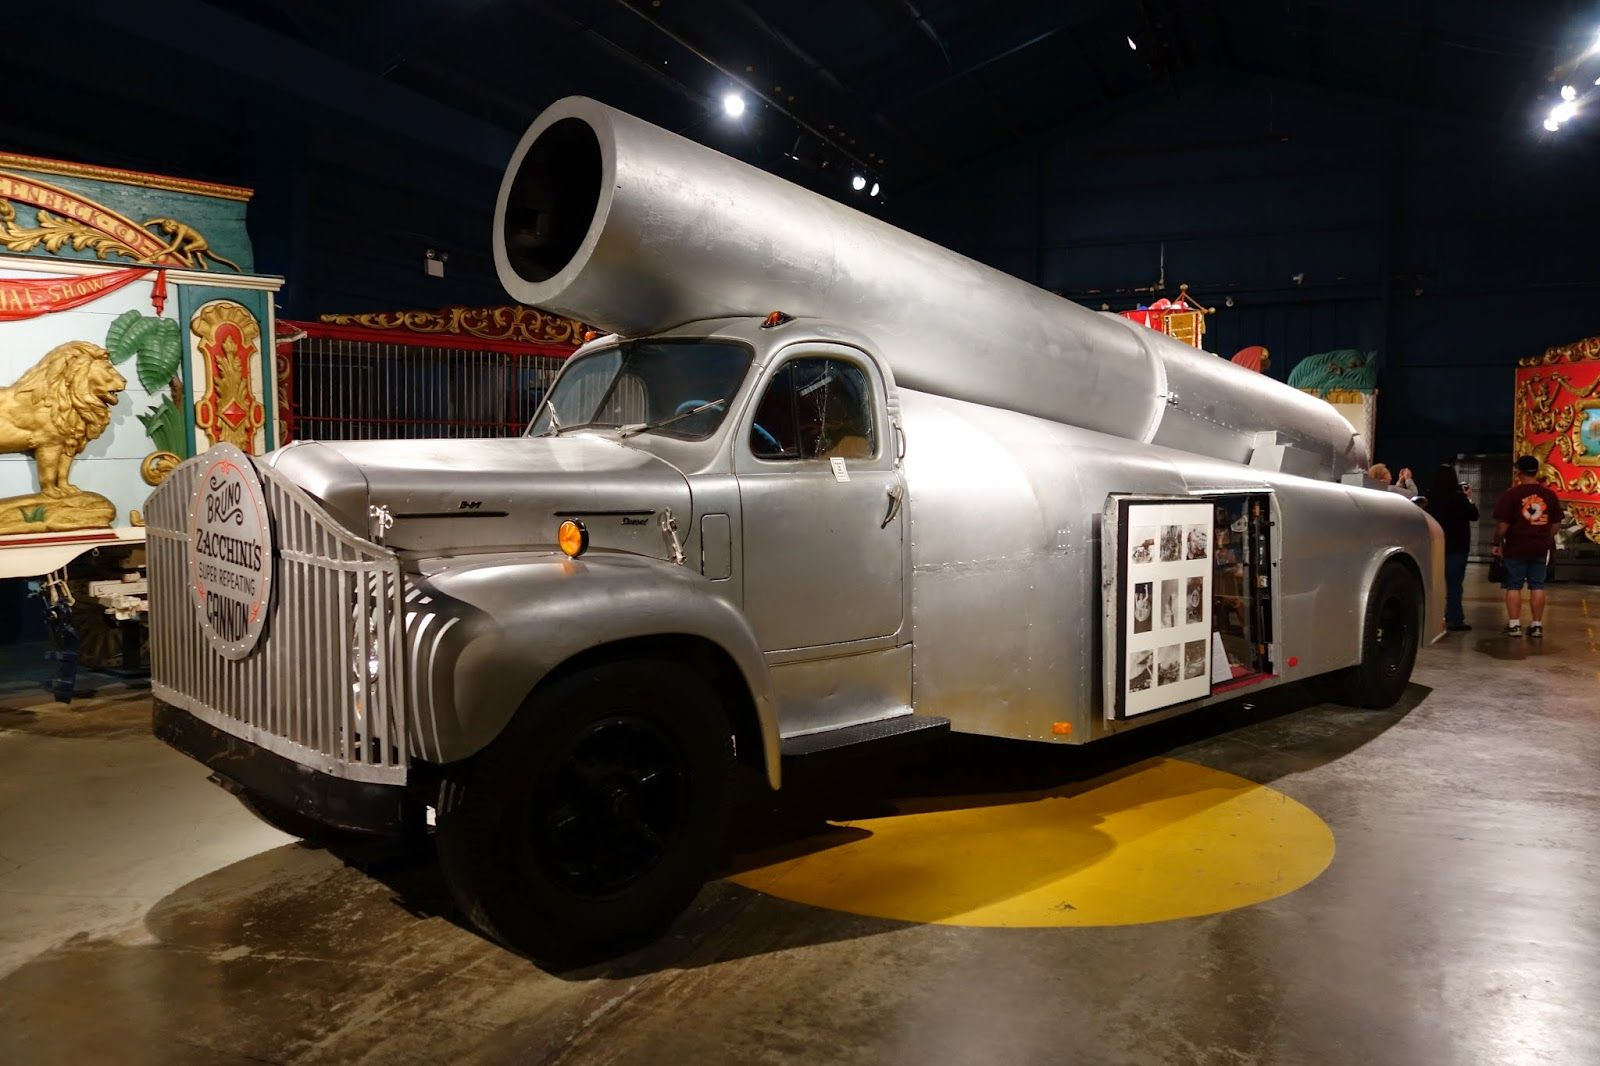 Bruno Zacchini's superrepeating cannon, mounted on a Mack